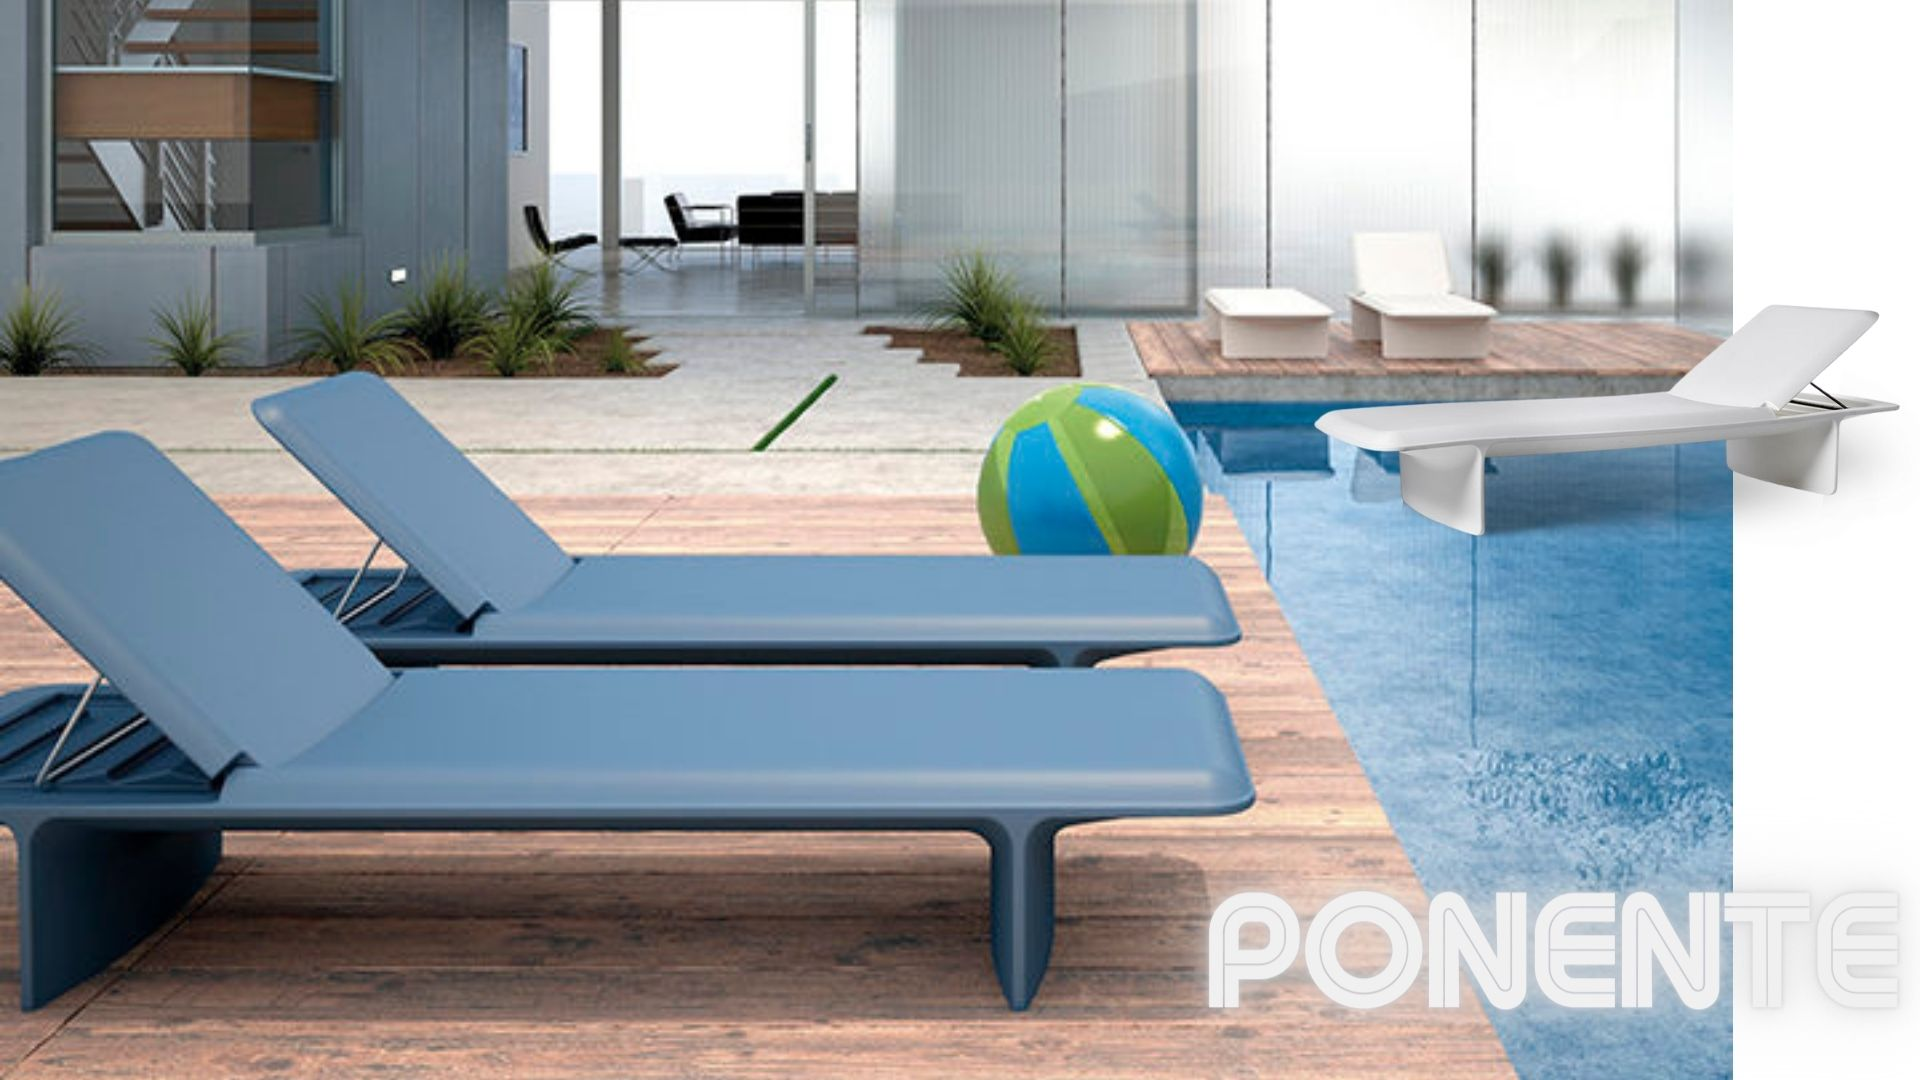 ponente-pool chaise-slide design